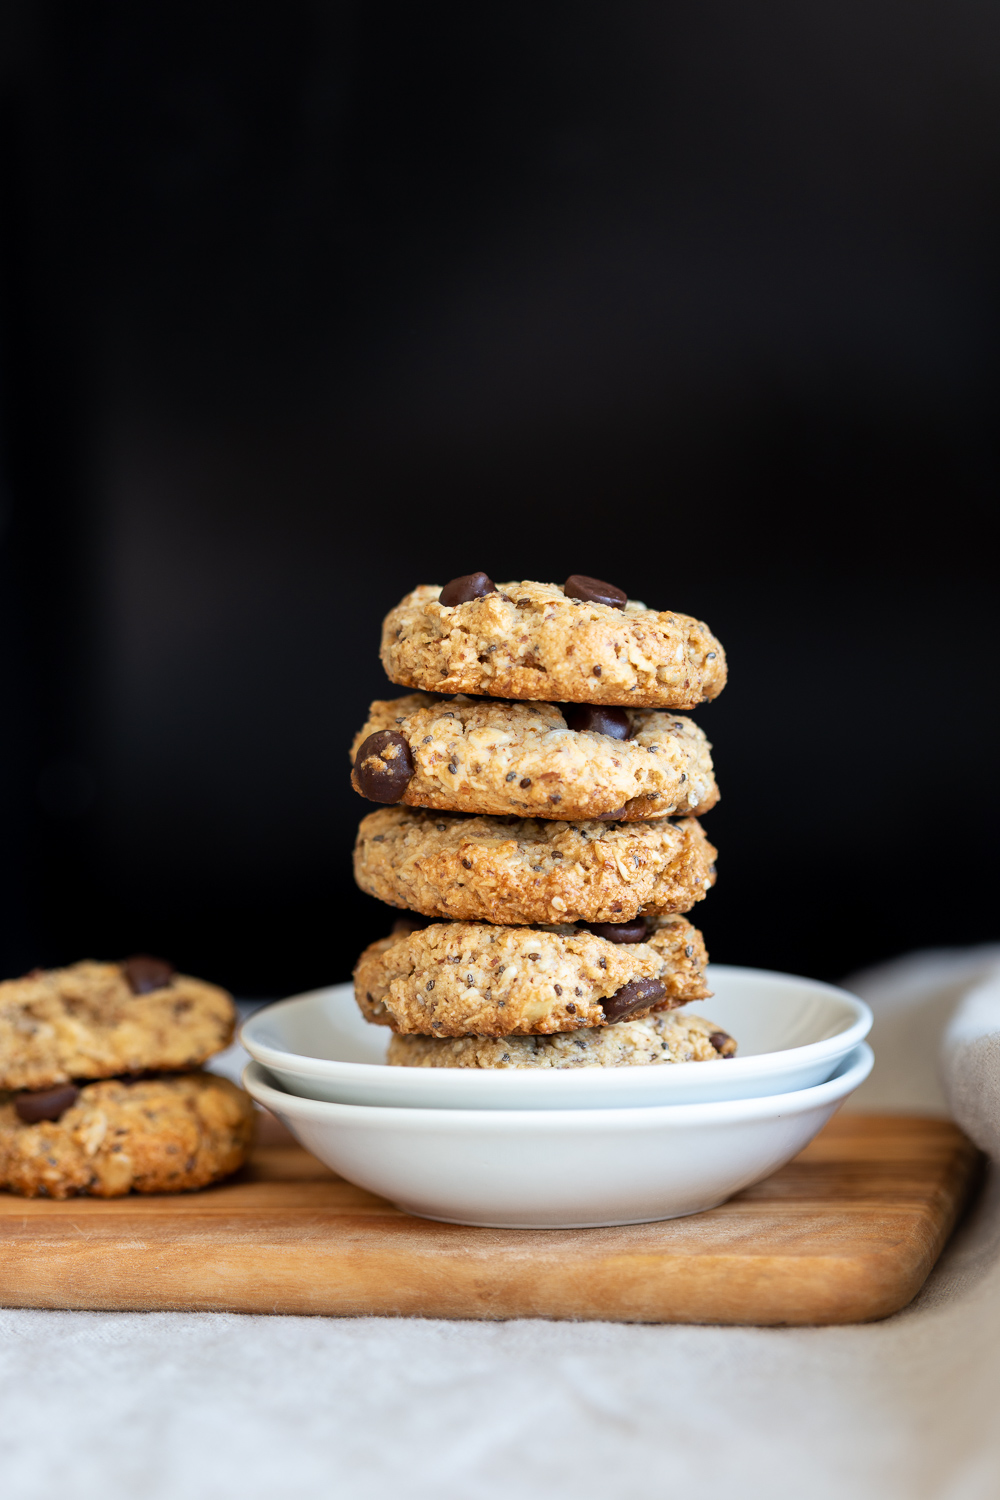 These Glutn Free Vegan Breakfast Cookies Are Satisfying With The Almond Flour Oats Nuts Seeds T In 2020 Breakfast Cookies Breakfast Cookies Gluten Free Vegan Richa